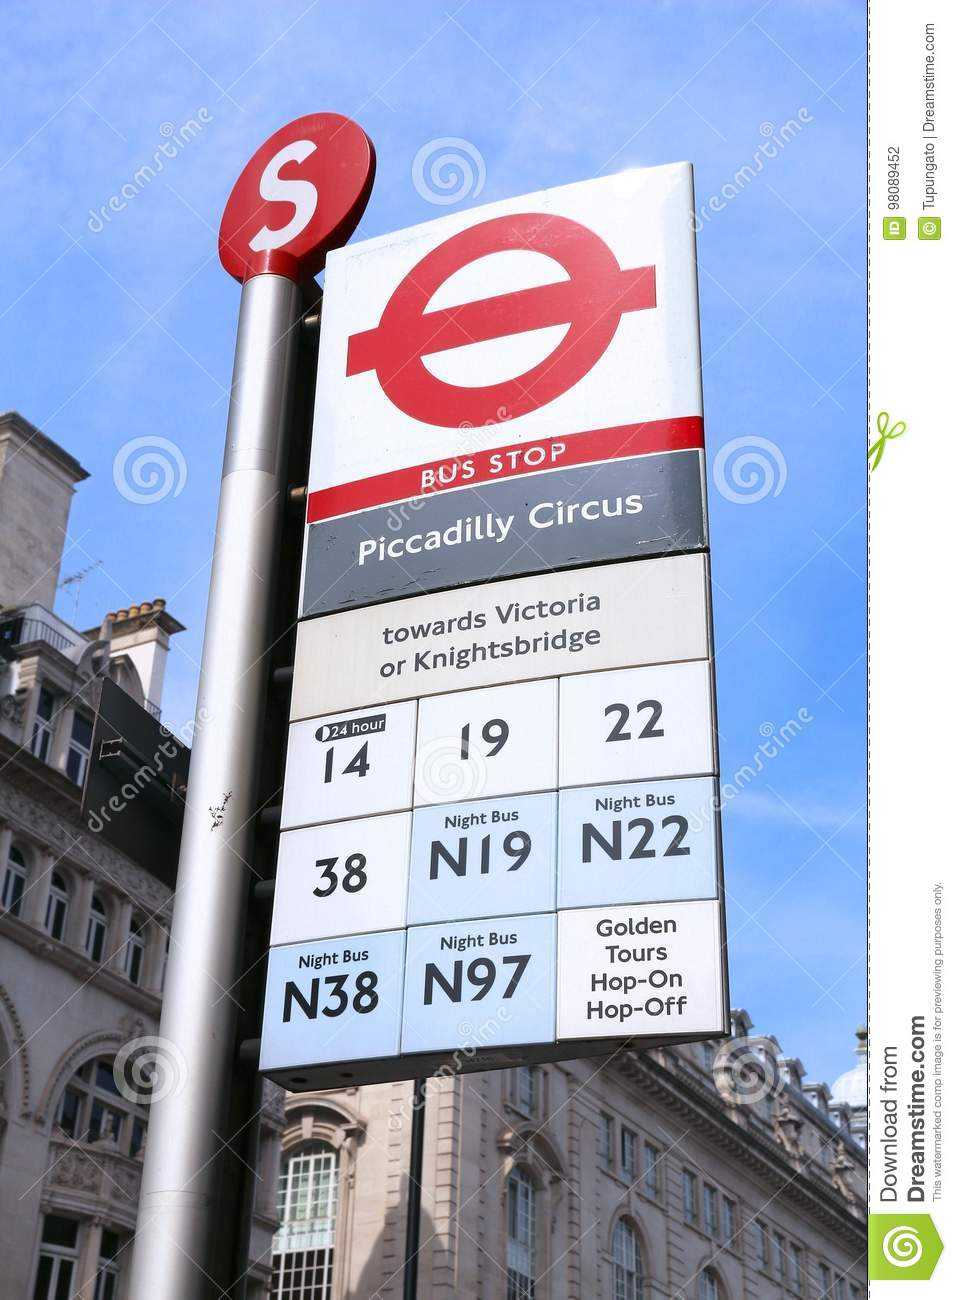 london-bus-stop-uk-july-sign-piccadilly-